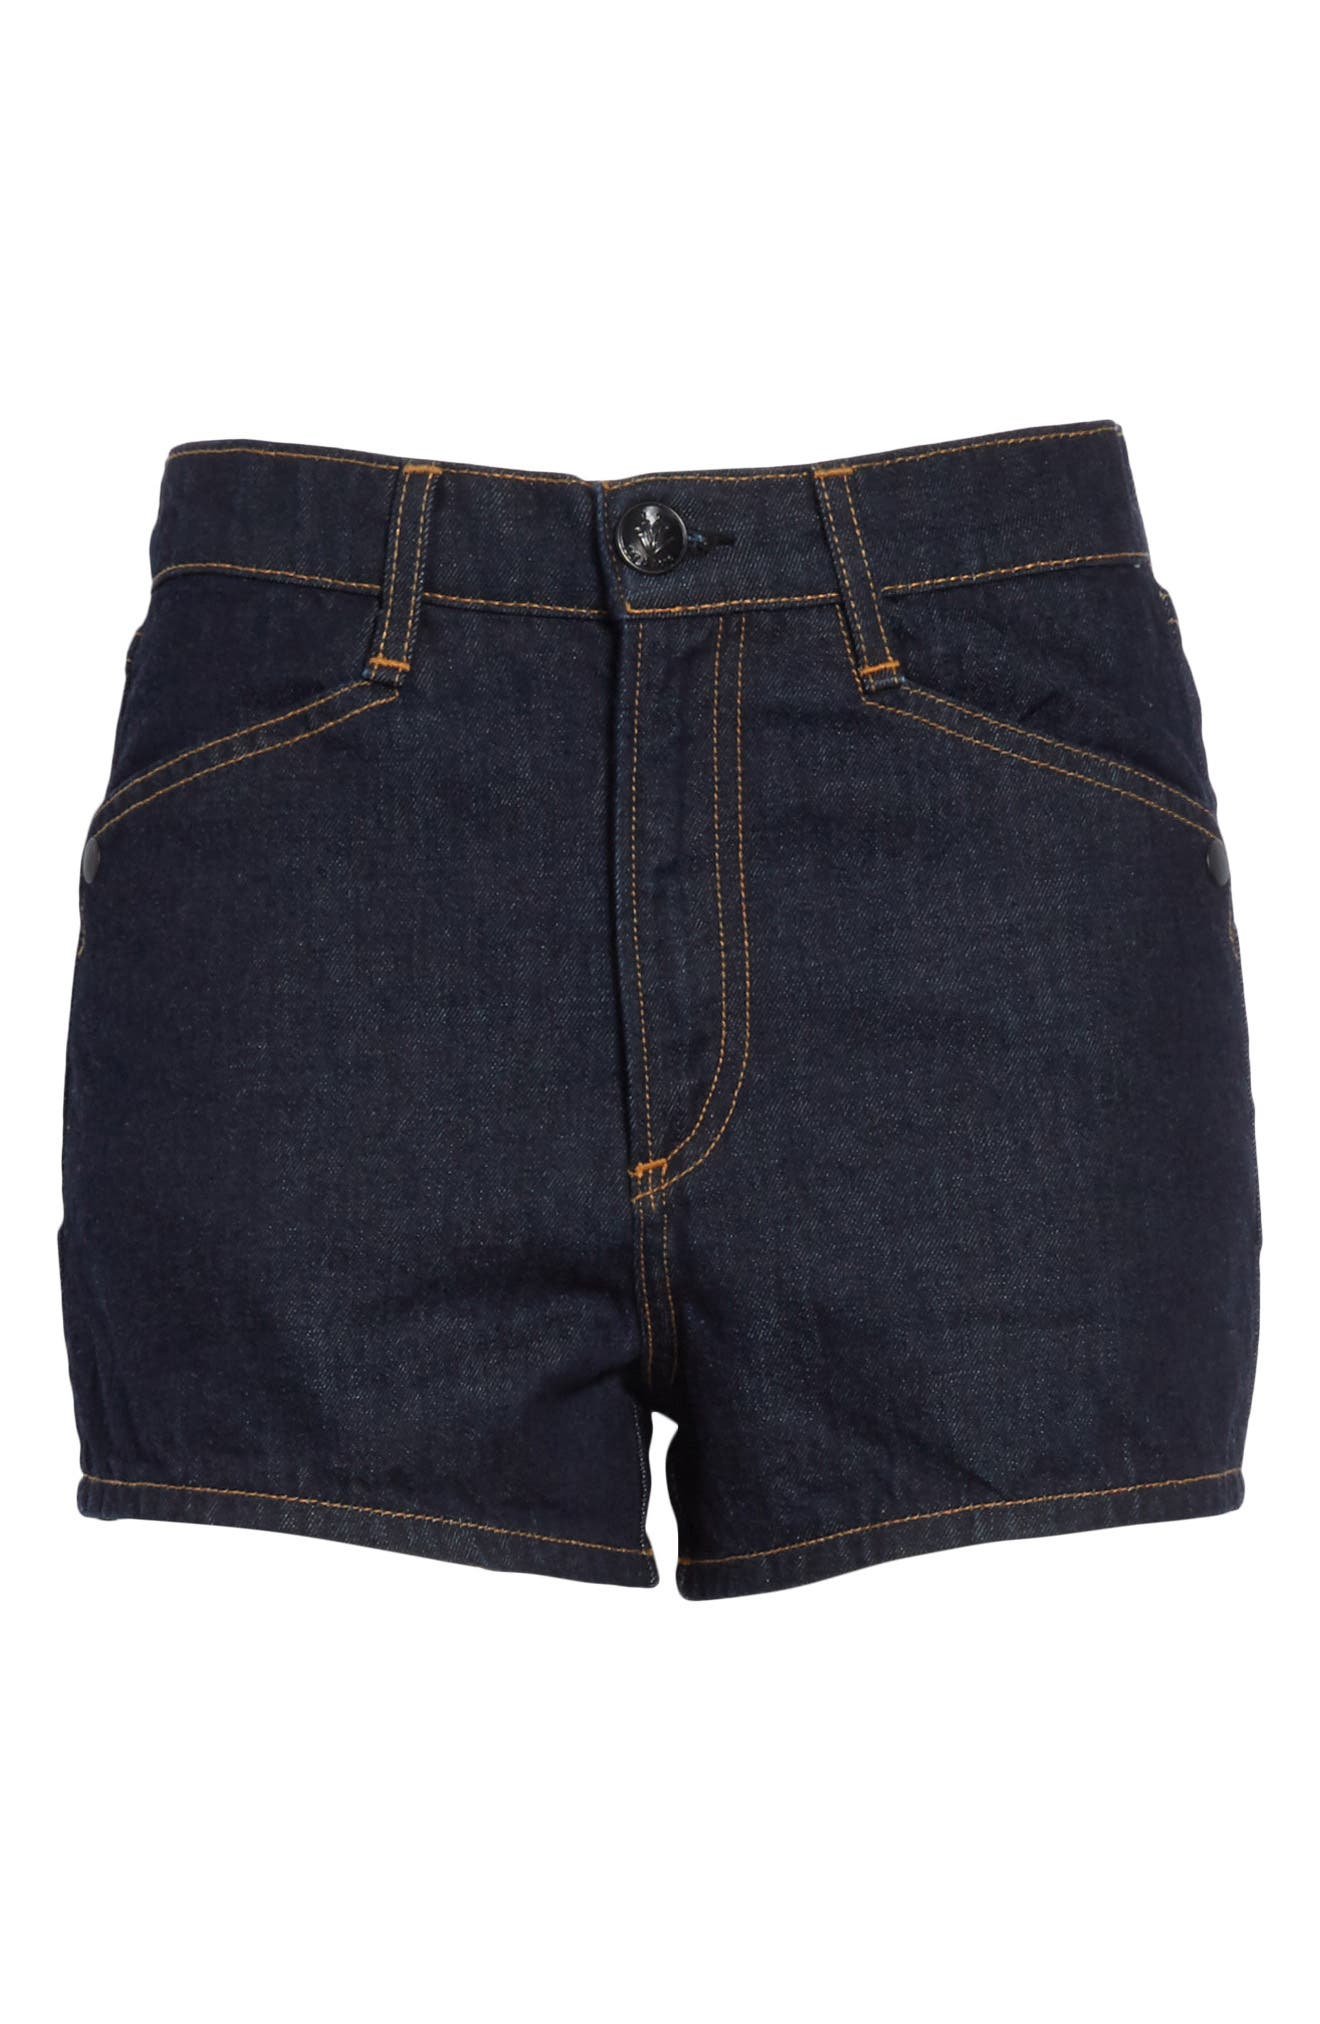 Ellie Denim Shorts,                             Alternate thumbnail 6, color,                             470